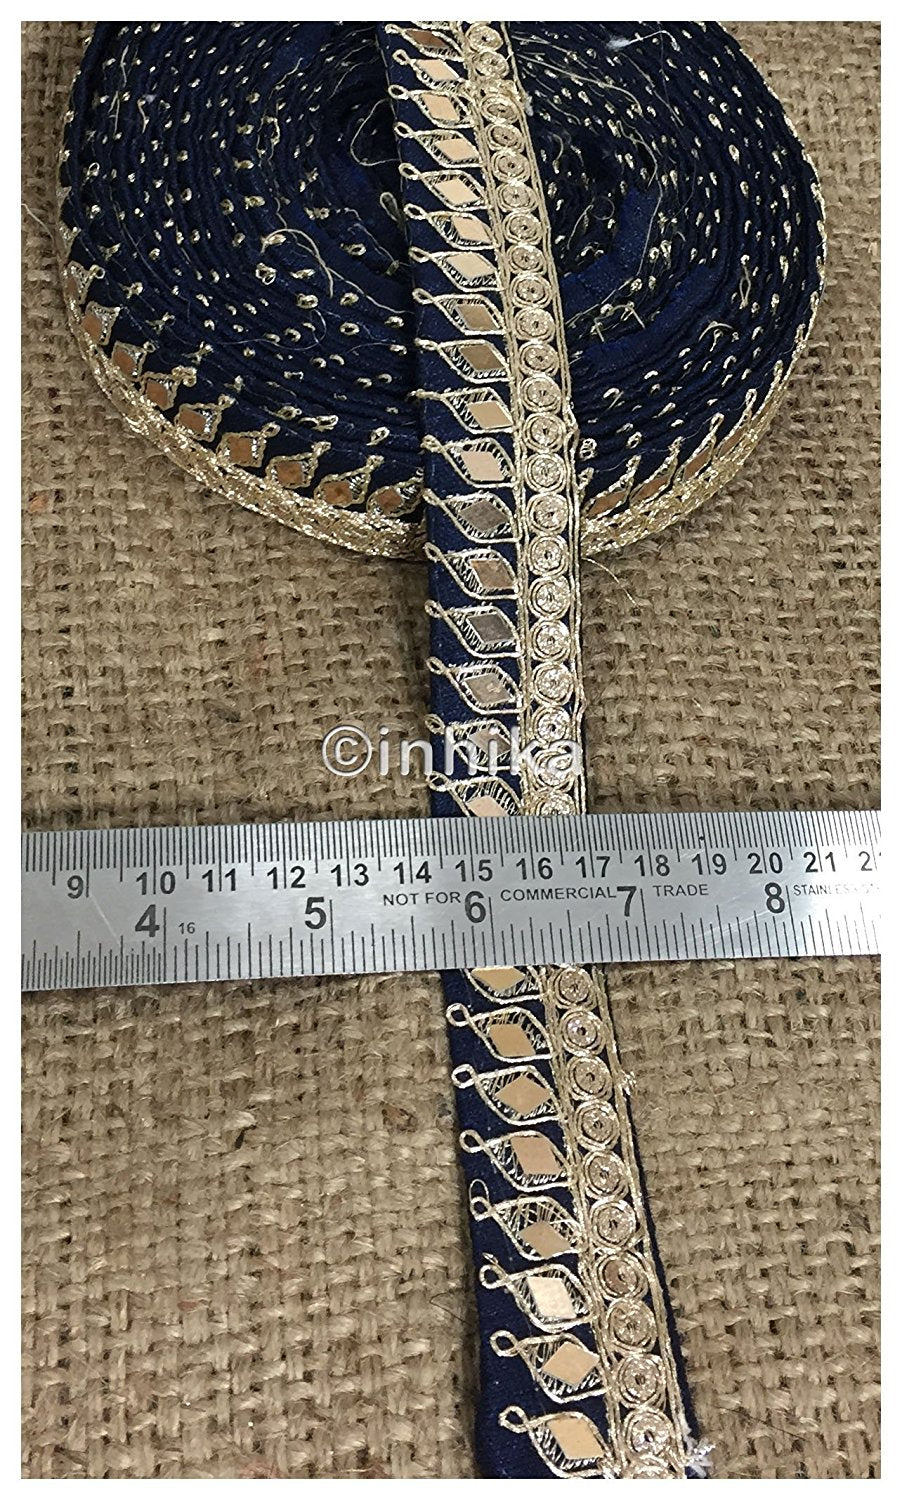 lace trim fabric beaded bridal braid trim by the yard Navy Blue, Embroidery, Mirror, 2 Inch Wide material Cotton Mix